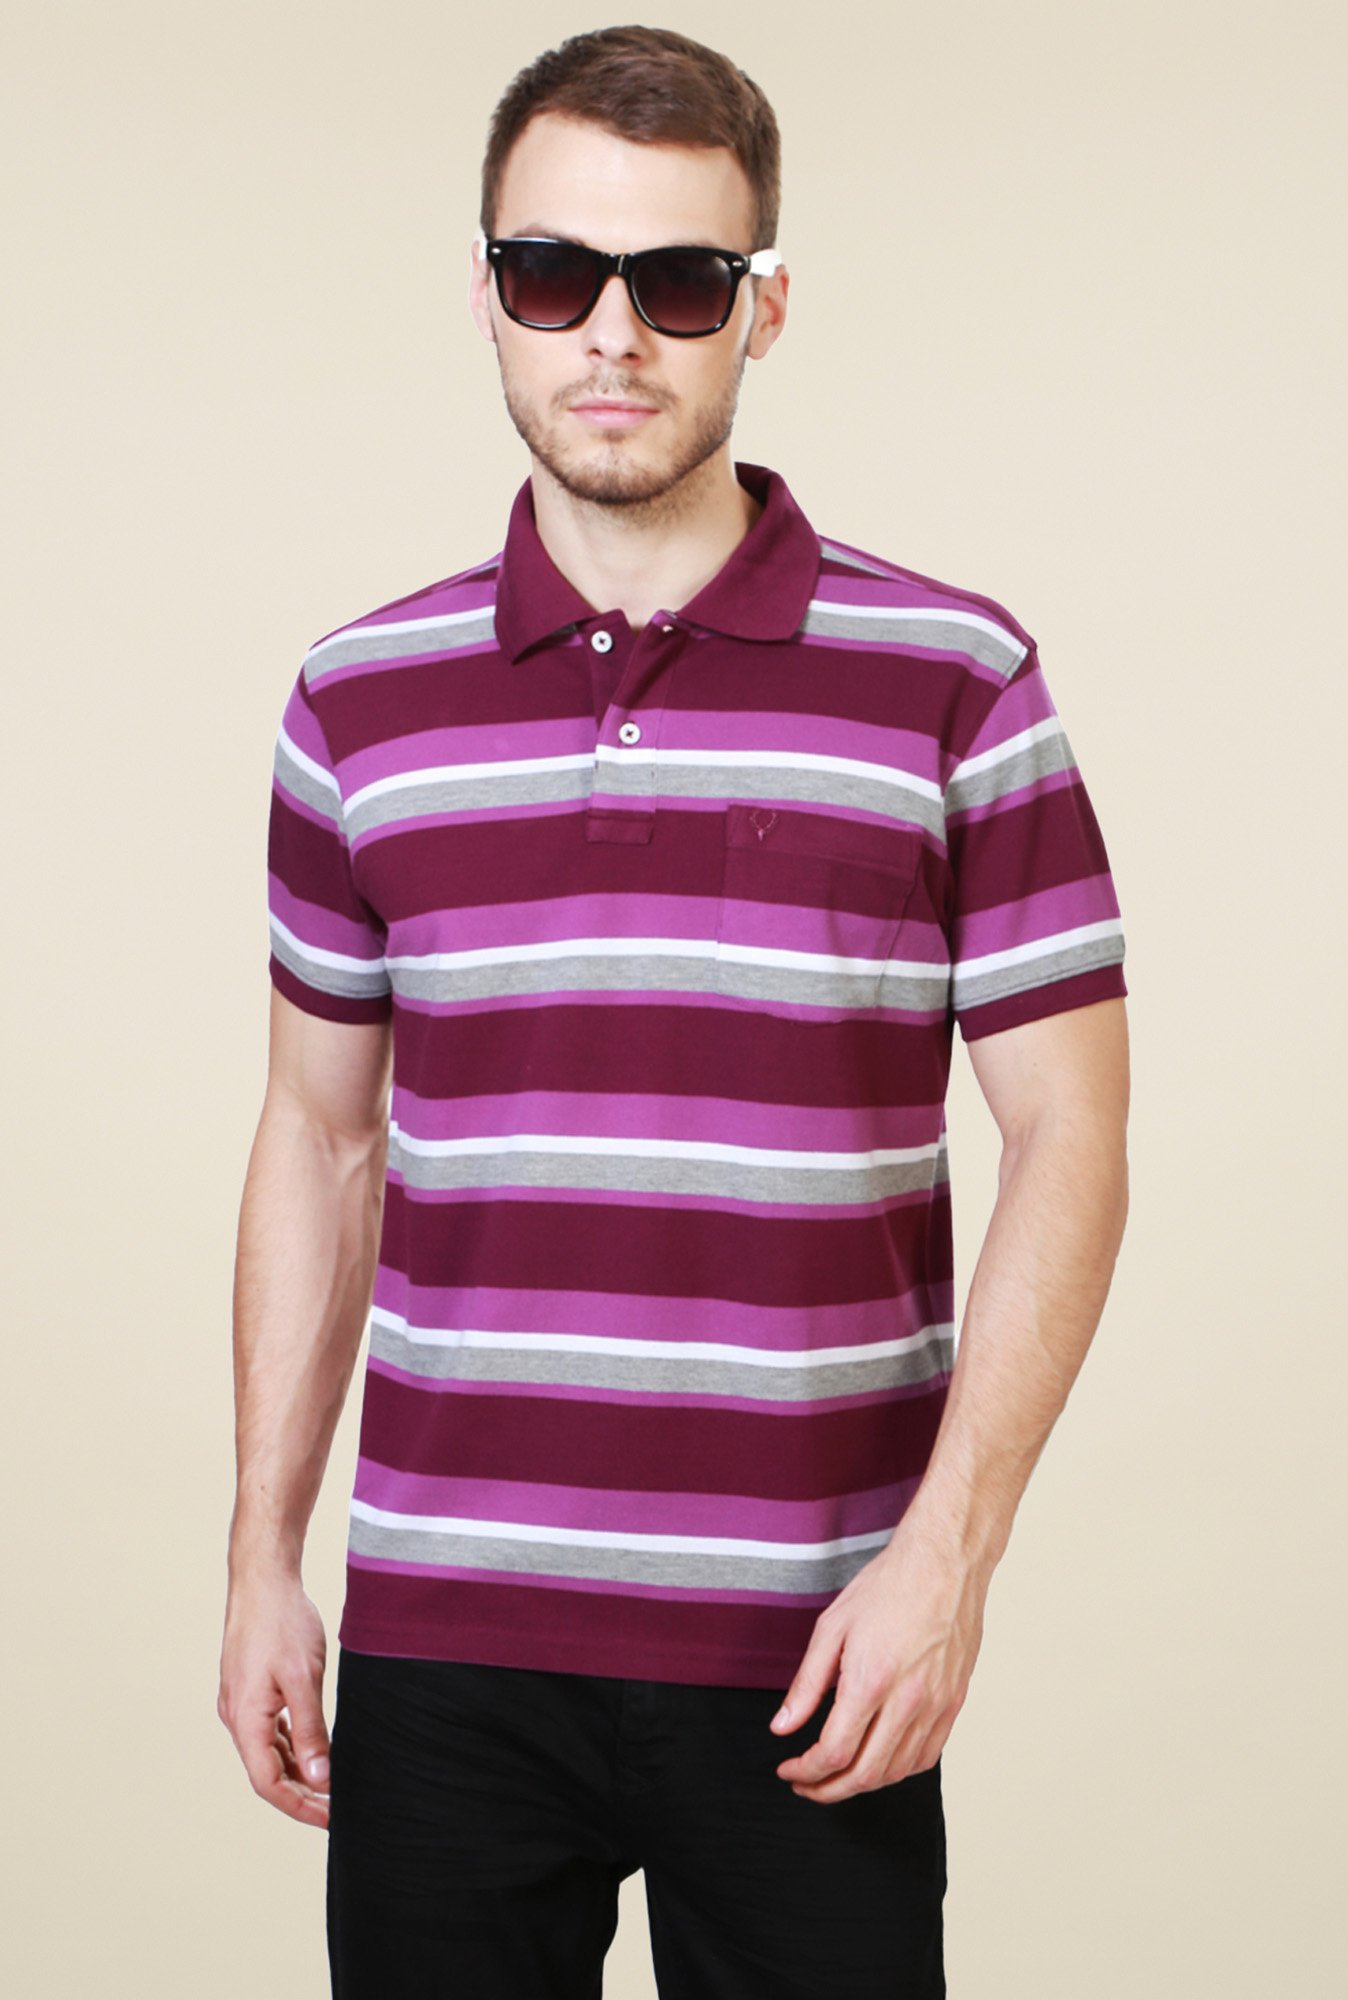 Allen Solly Maroon Striped Polo T-Shirt